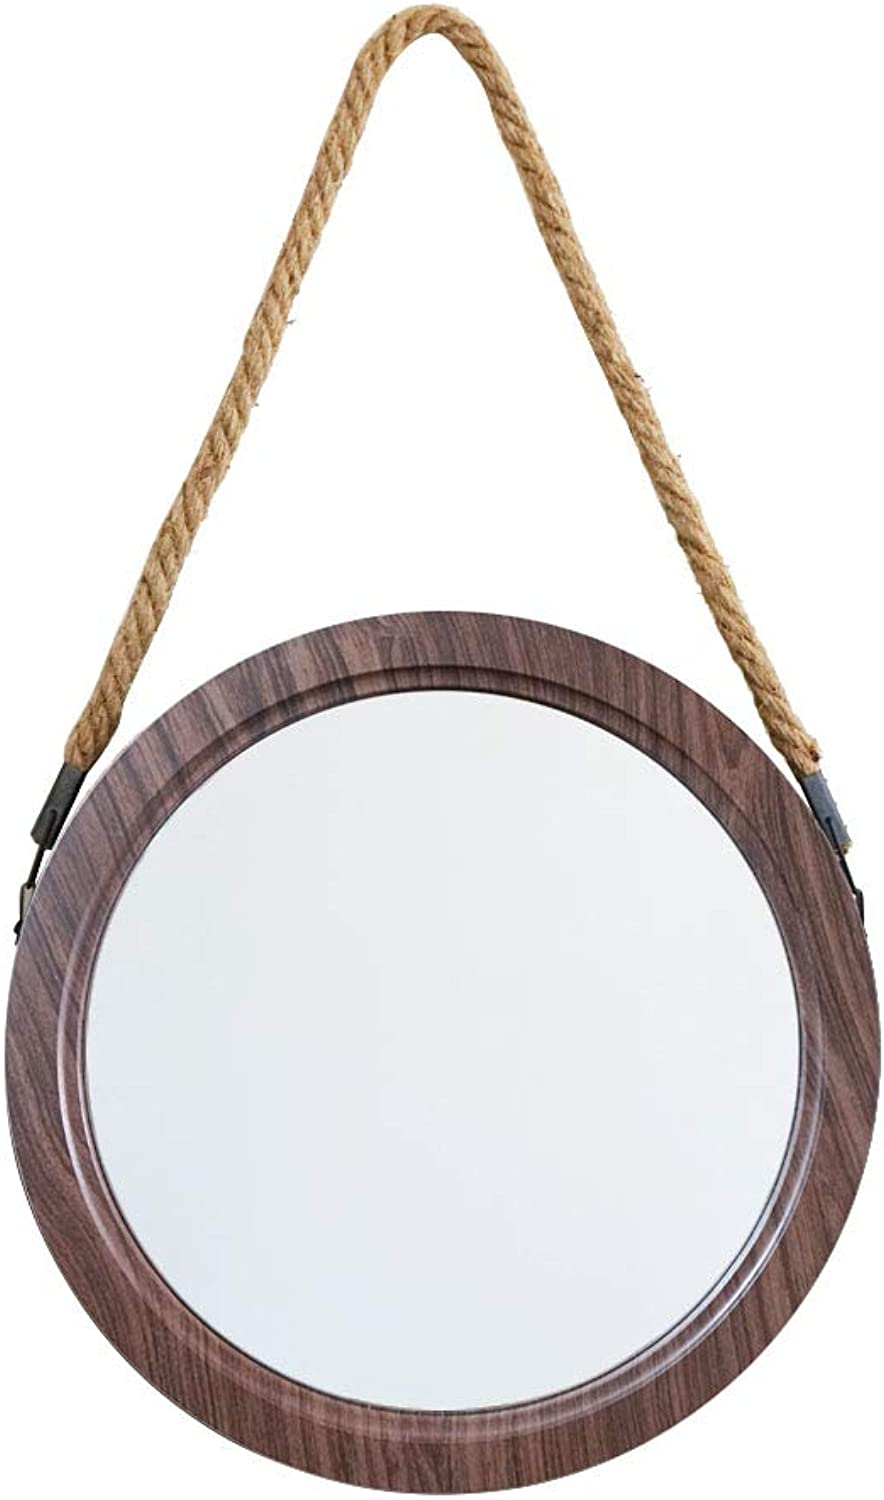 Retro Round Wall Hanging Mirror 30x30cm Circle Plastic Frame Bathroom Mirror Makeup Shaving Home Decoration Wall Mirror